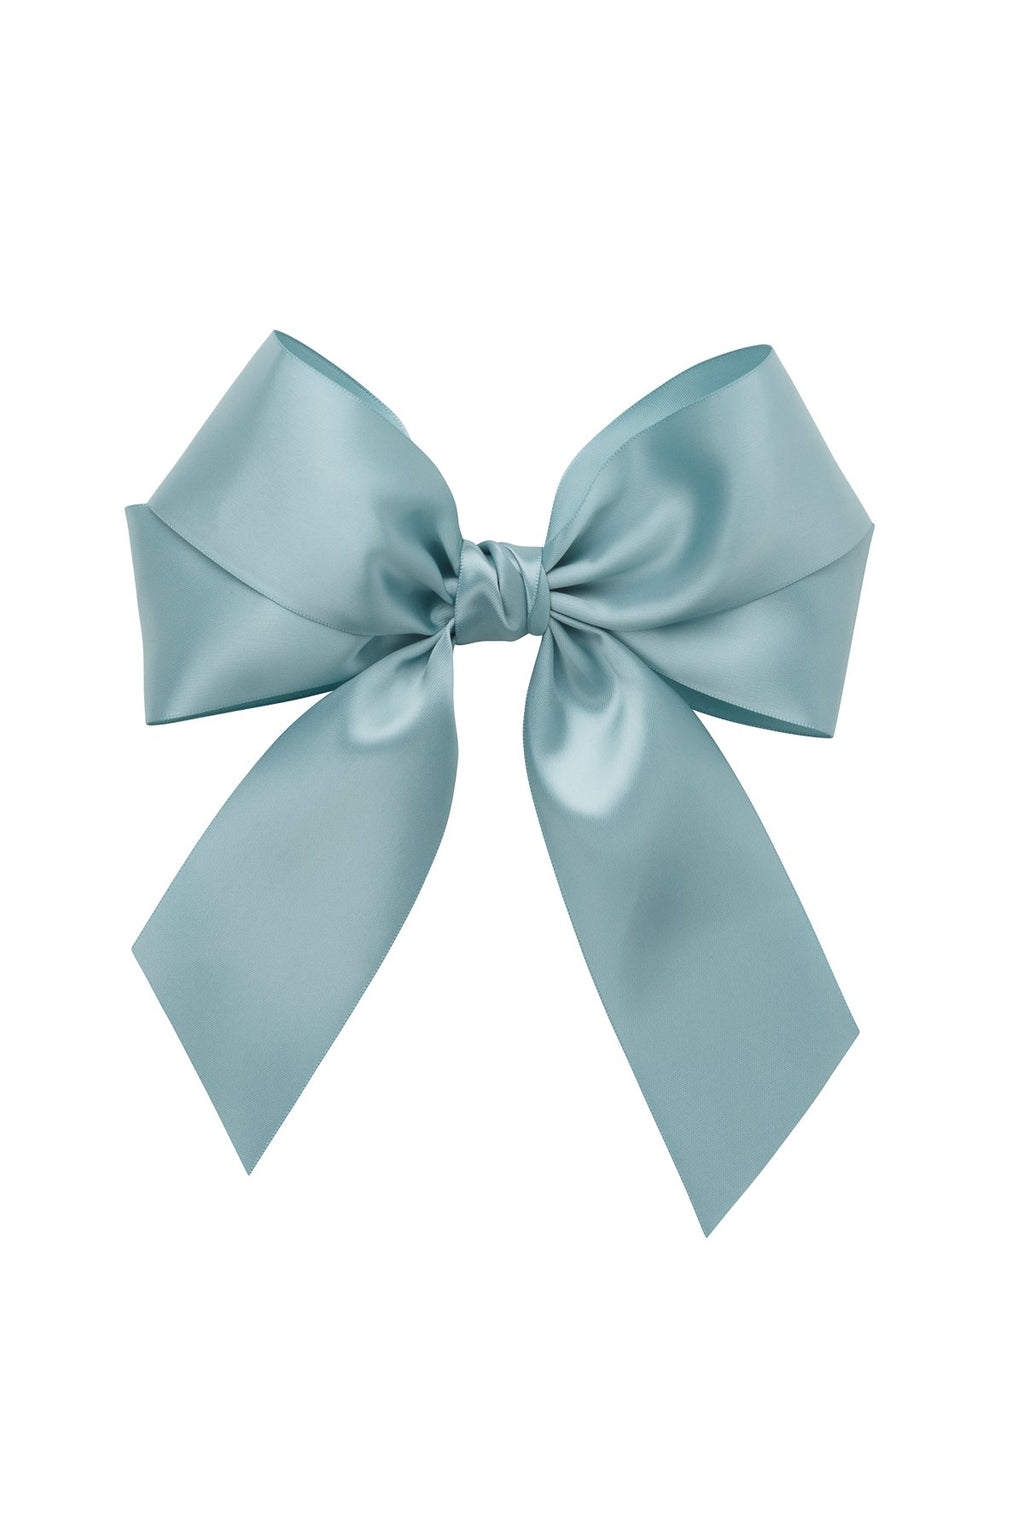 Oversized Bow Pony/Clip - Nile Blue - PROJECT 6, modest fashion